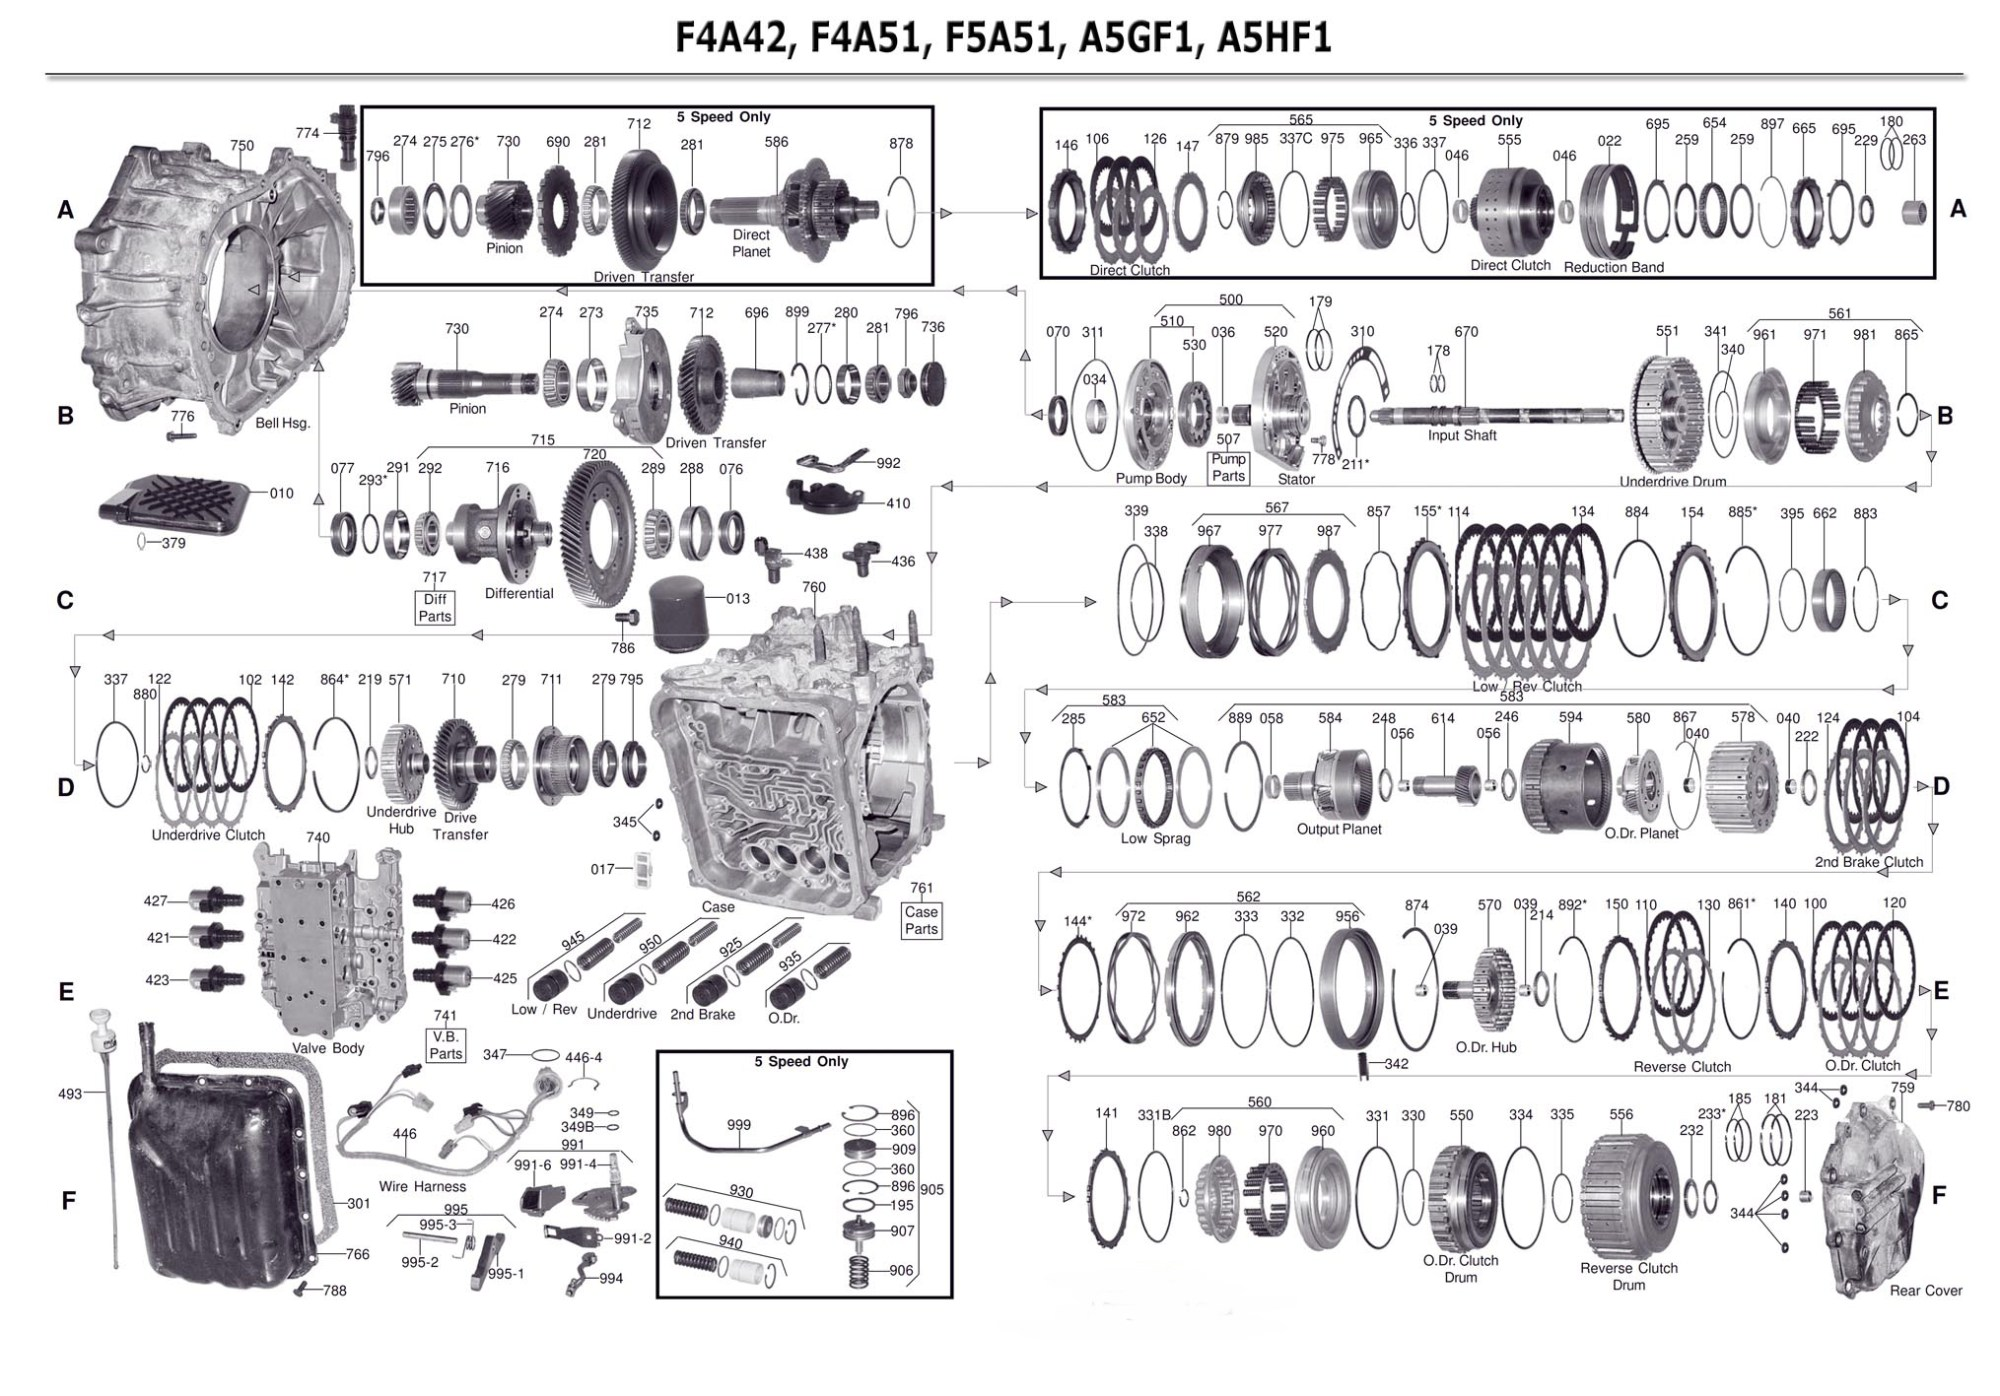 hight resolution of f4a41 wiring diagram